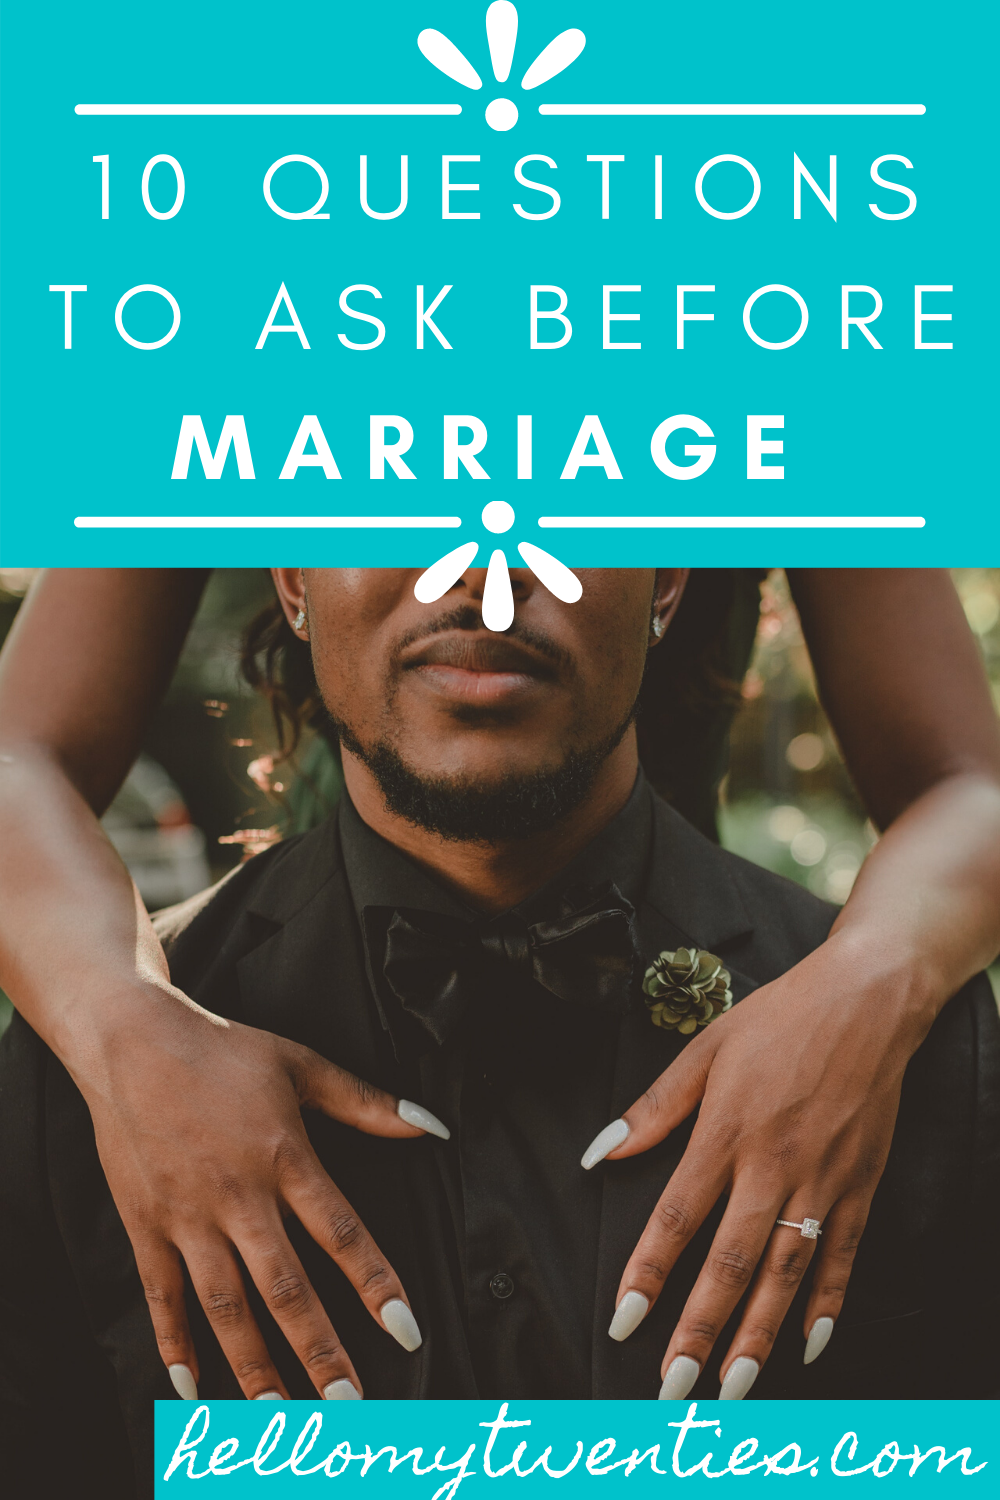 10 Questions to ask before marriage